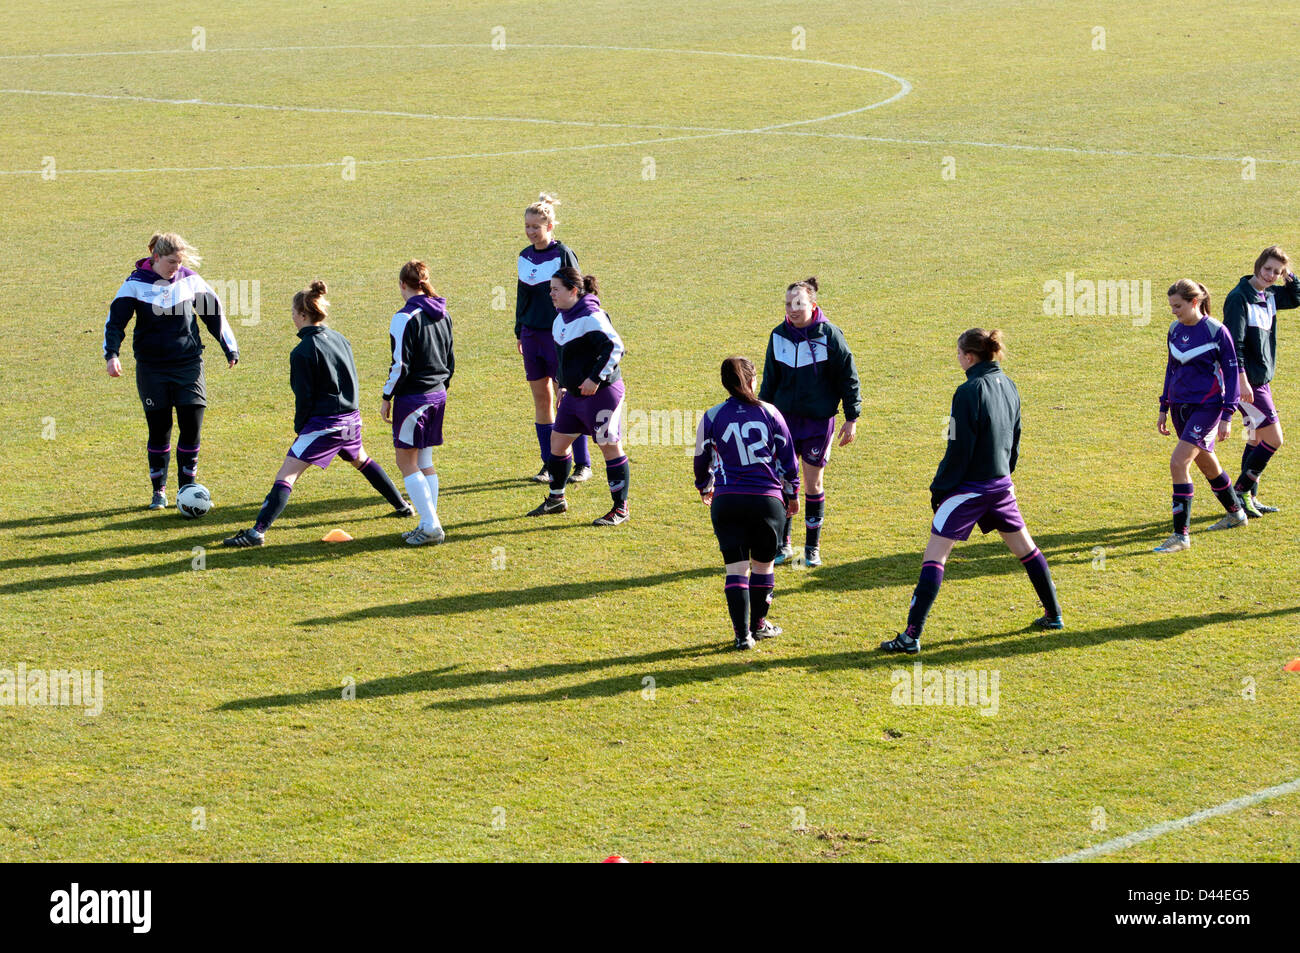 University sport, women`s footballers doing warm-up exercises before match - Stock Image